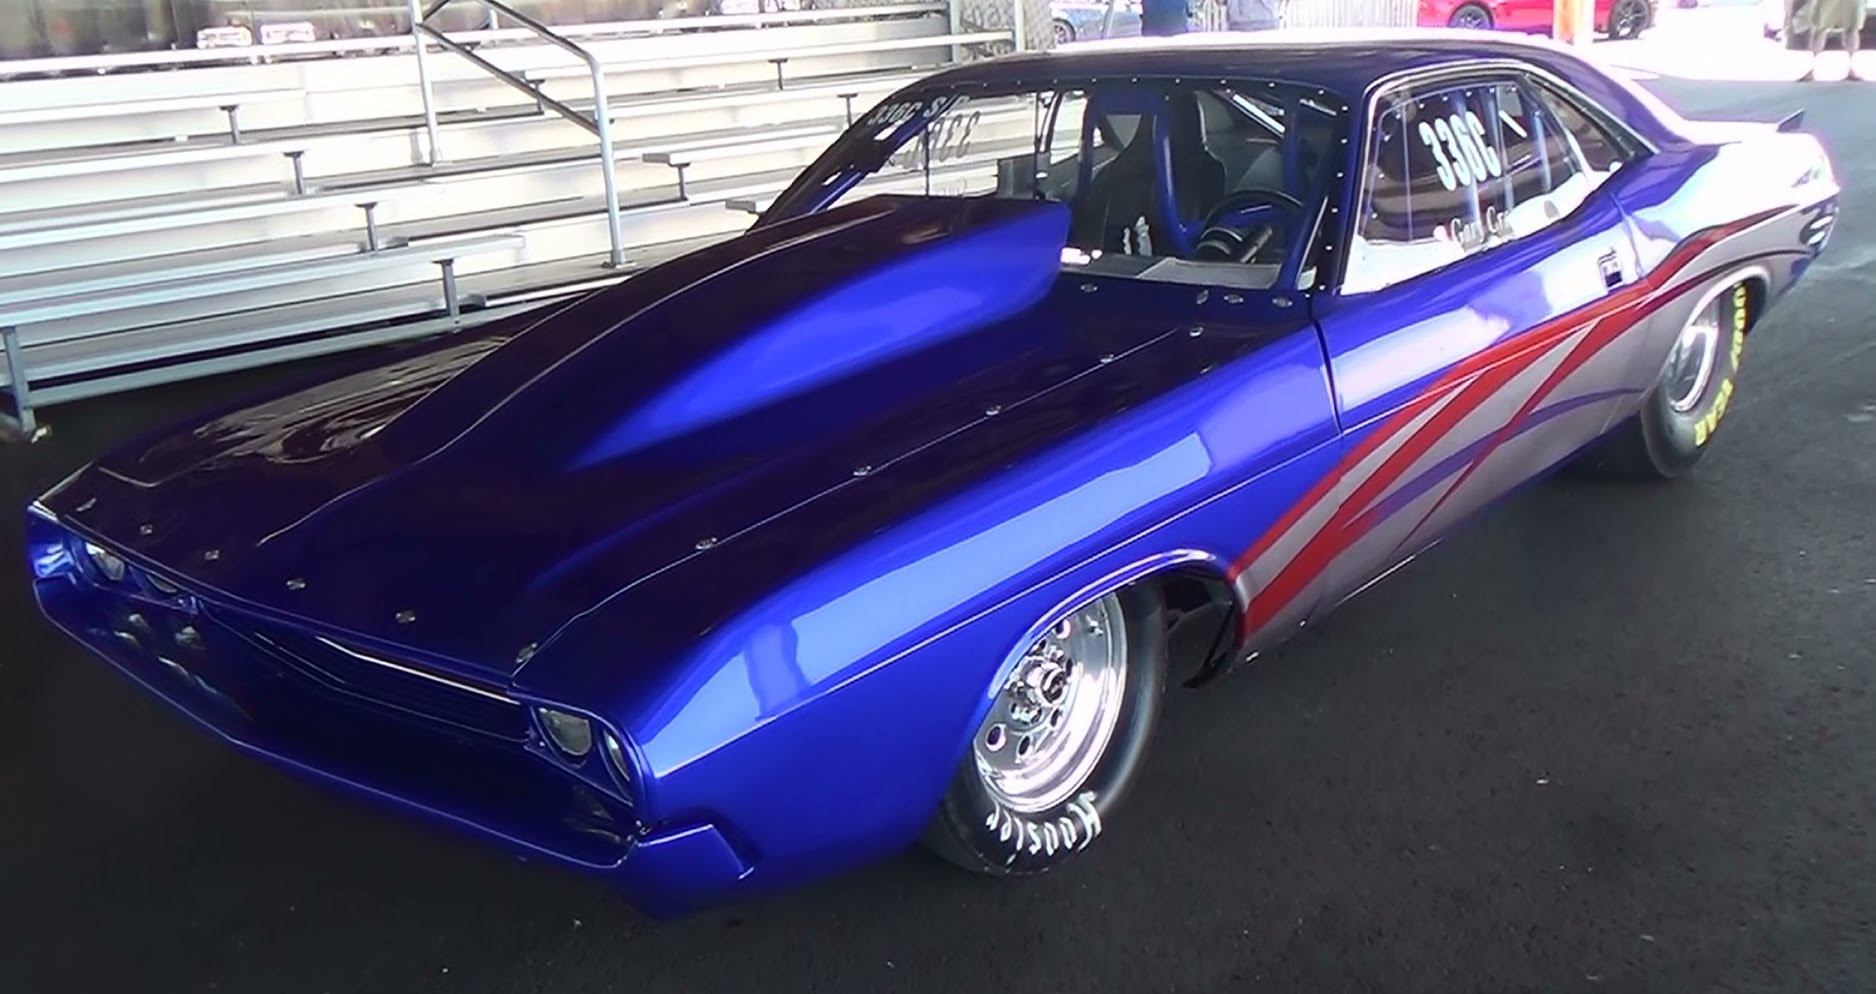 1970 Challenger Drag Car Scottiedtv Traveling Charity Road